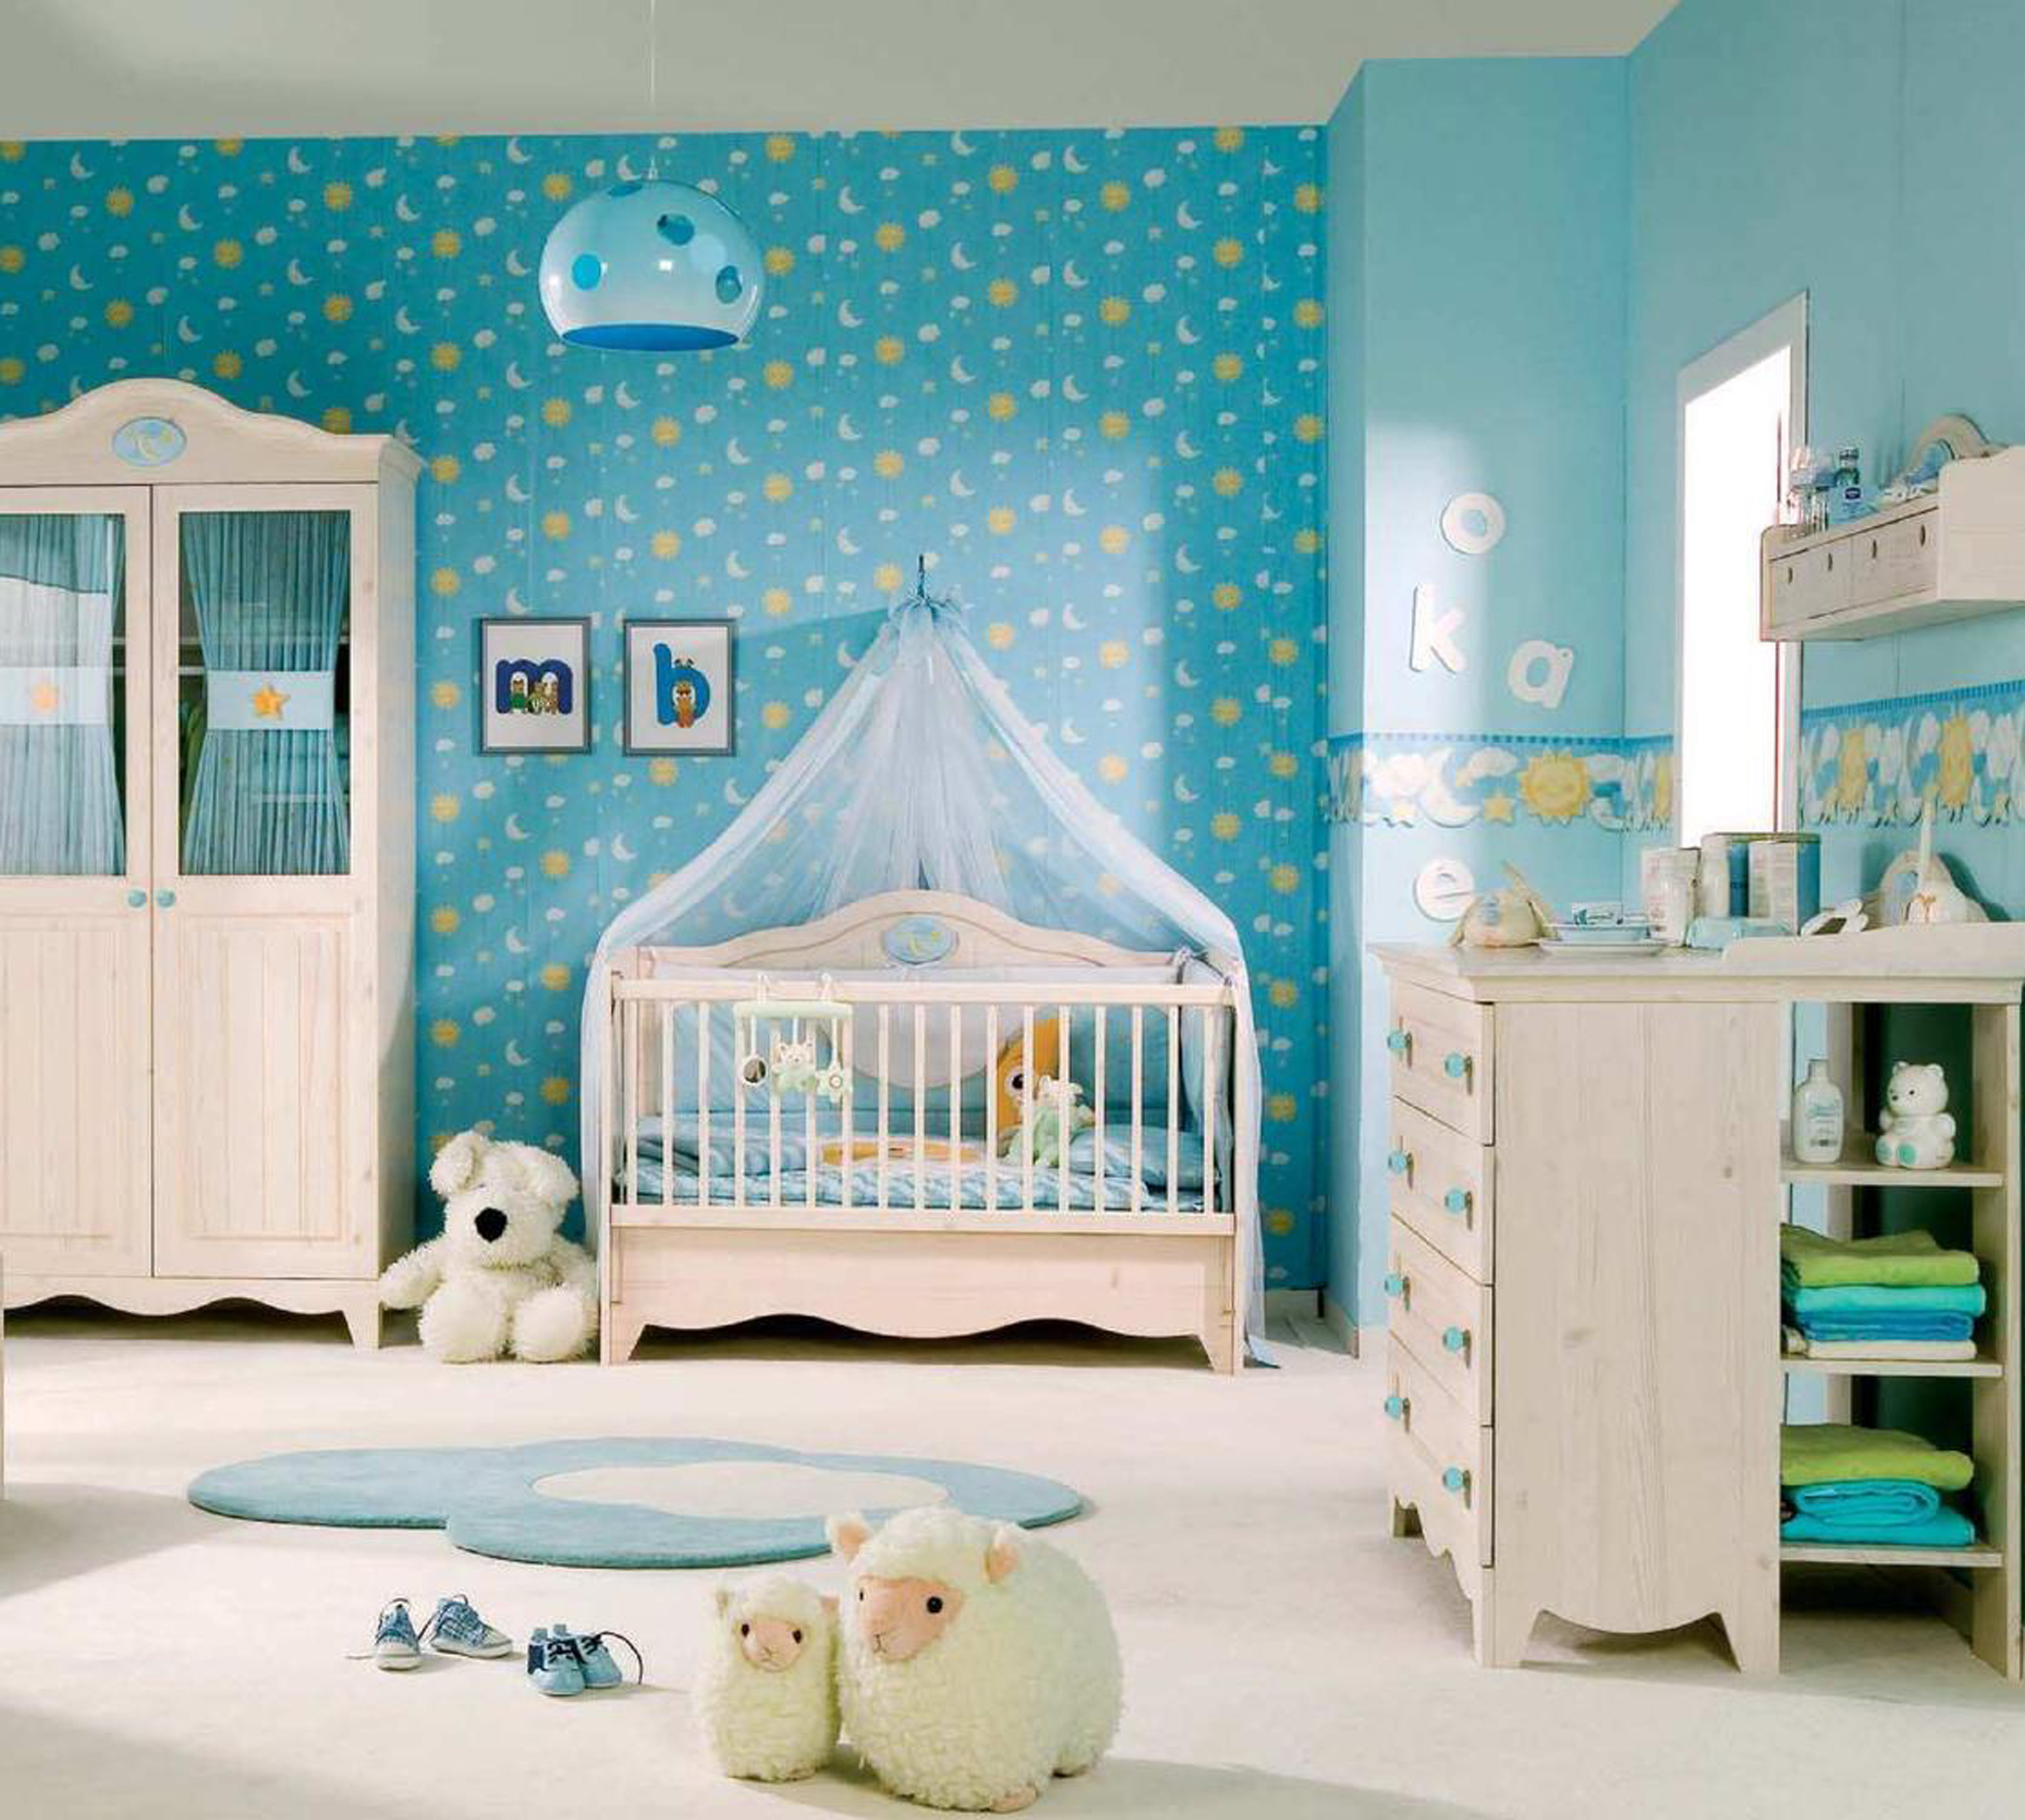 Luxury Baby Girl Room Design Idea With Blue Wallpaper White Crib White Wardrobe And Cute White Sheep Dolls Beautiful Baby Girl Room Design Ideas (Image 39 of 123)